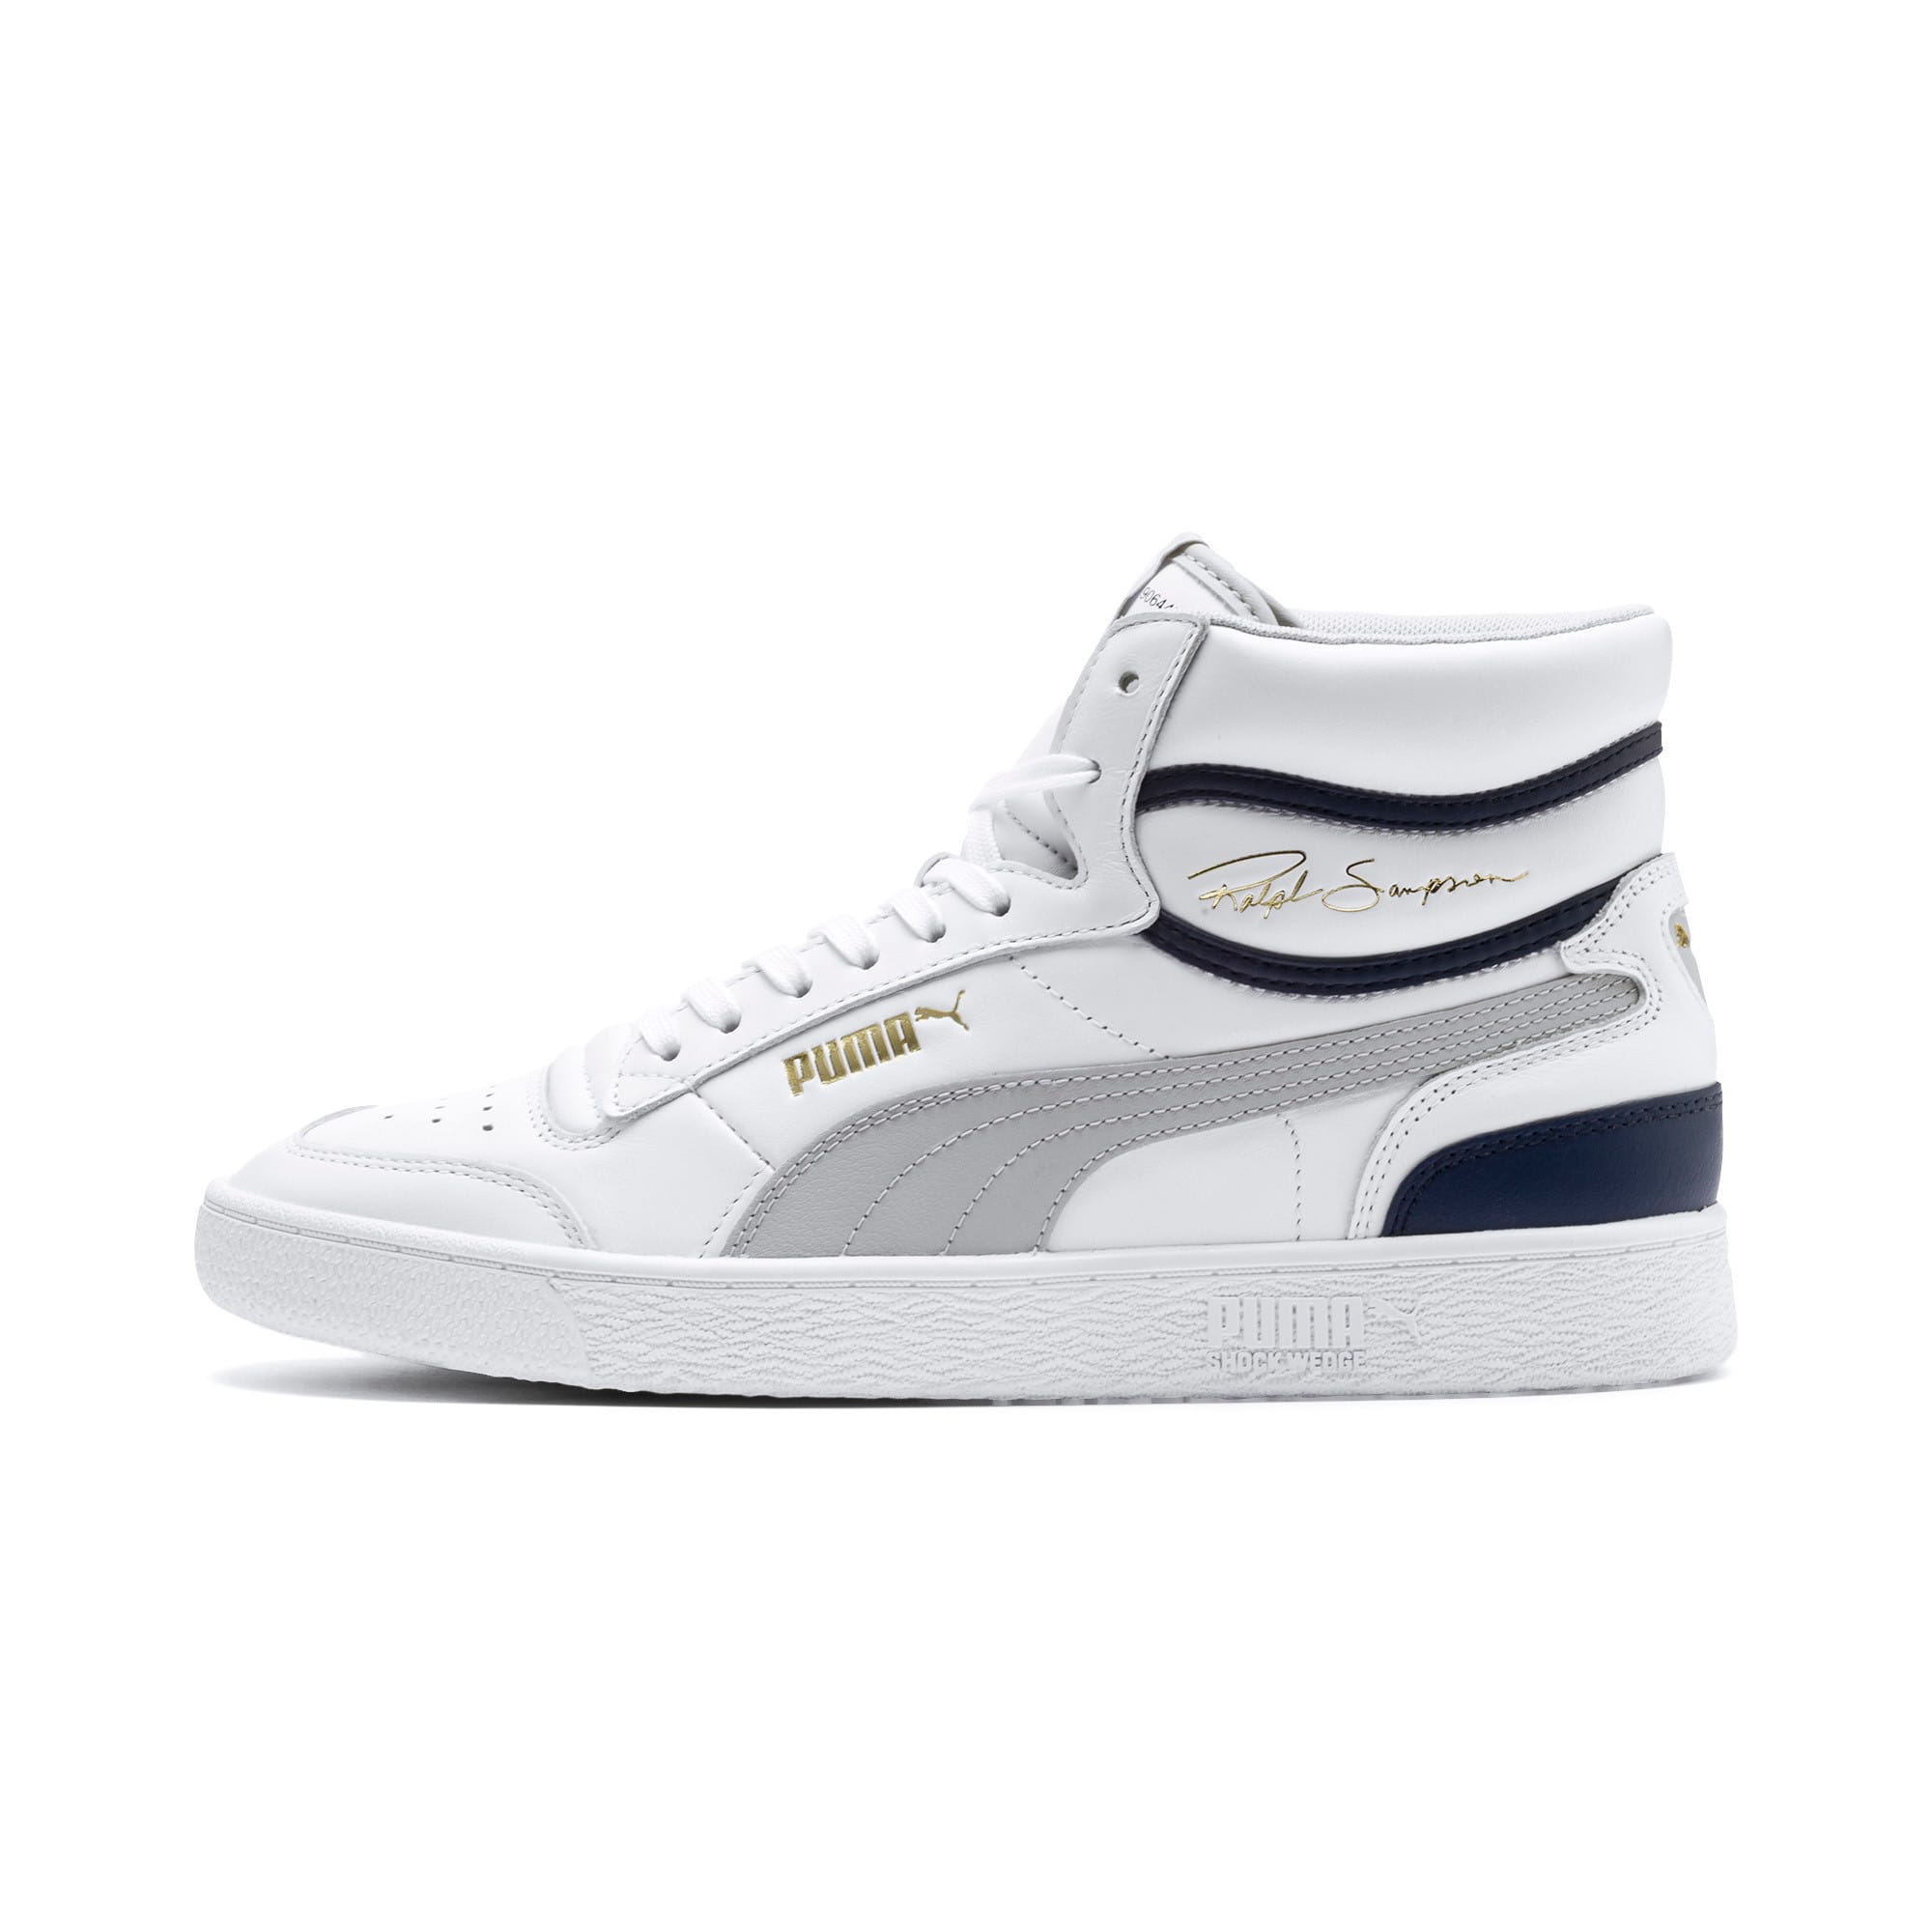 Thumbnail 1 of Ralph Sampson Mid Trainers, P White-Gray Violet-Peacoat, medium-IND